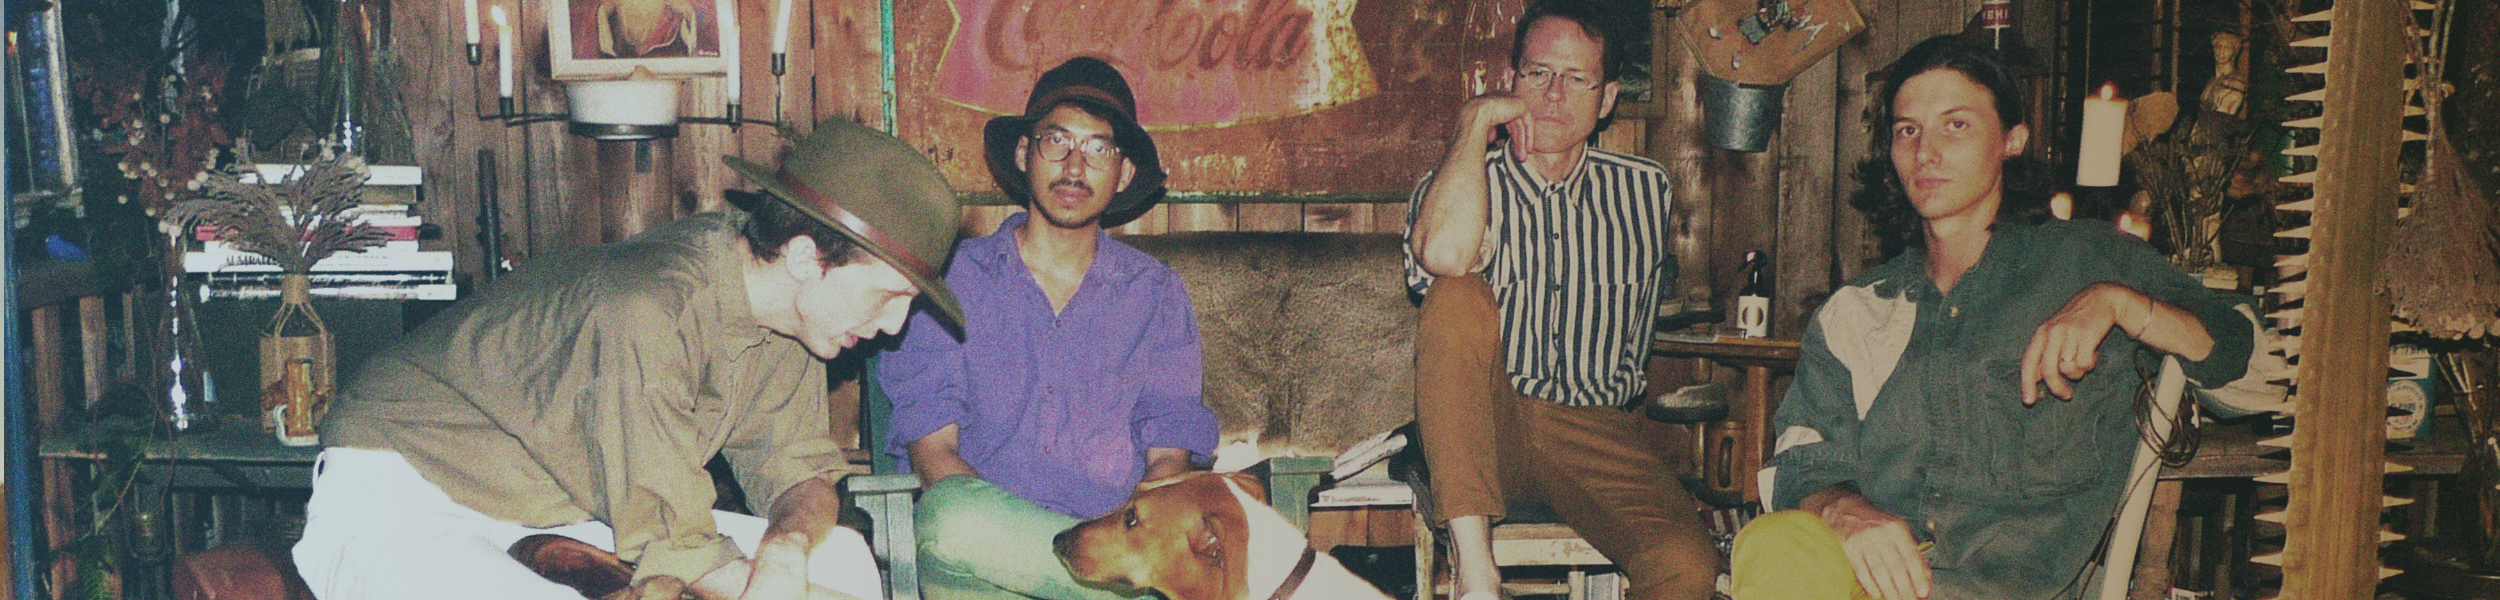 Deerhunter - Deerhunter Share 'Fading Frontier' Concept Map